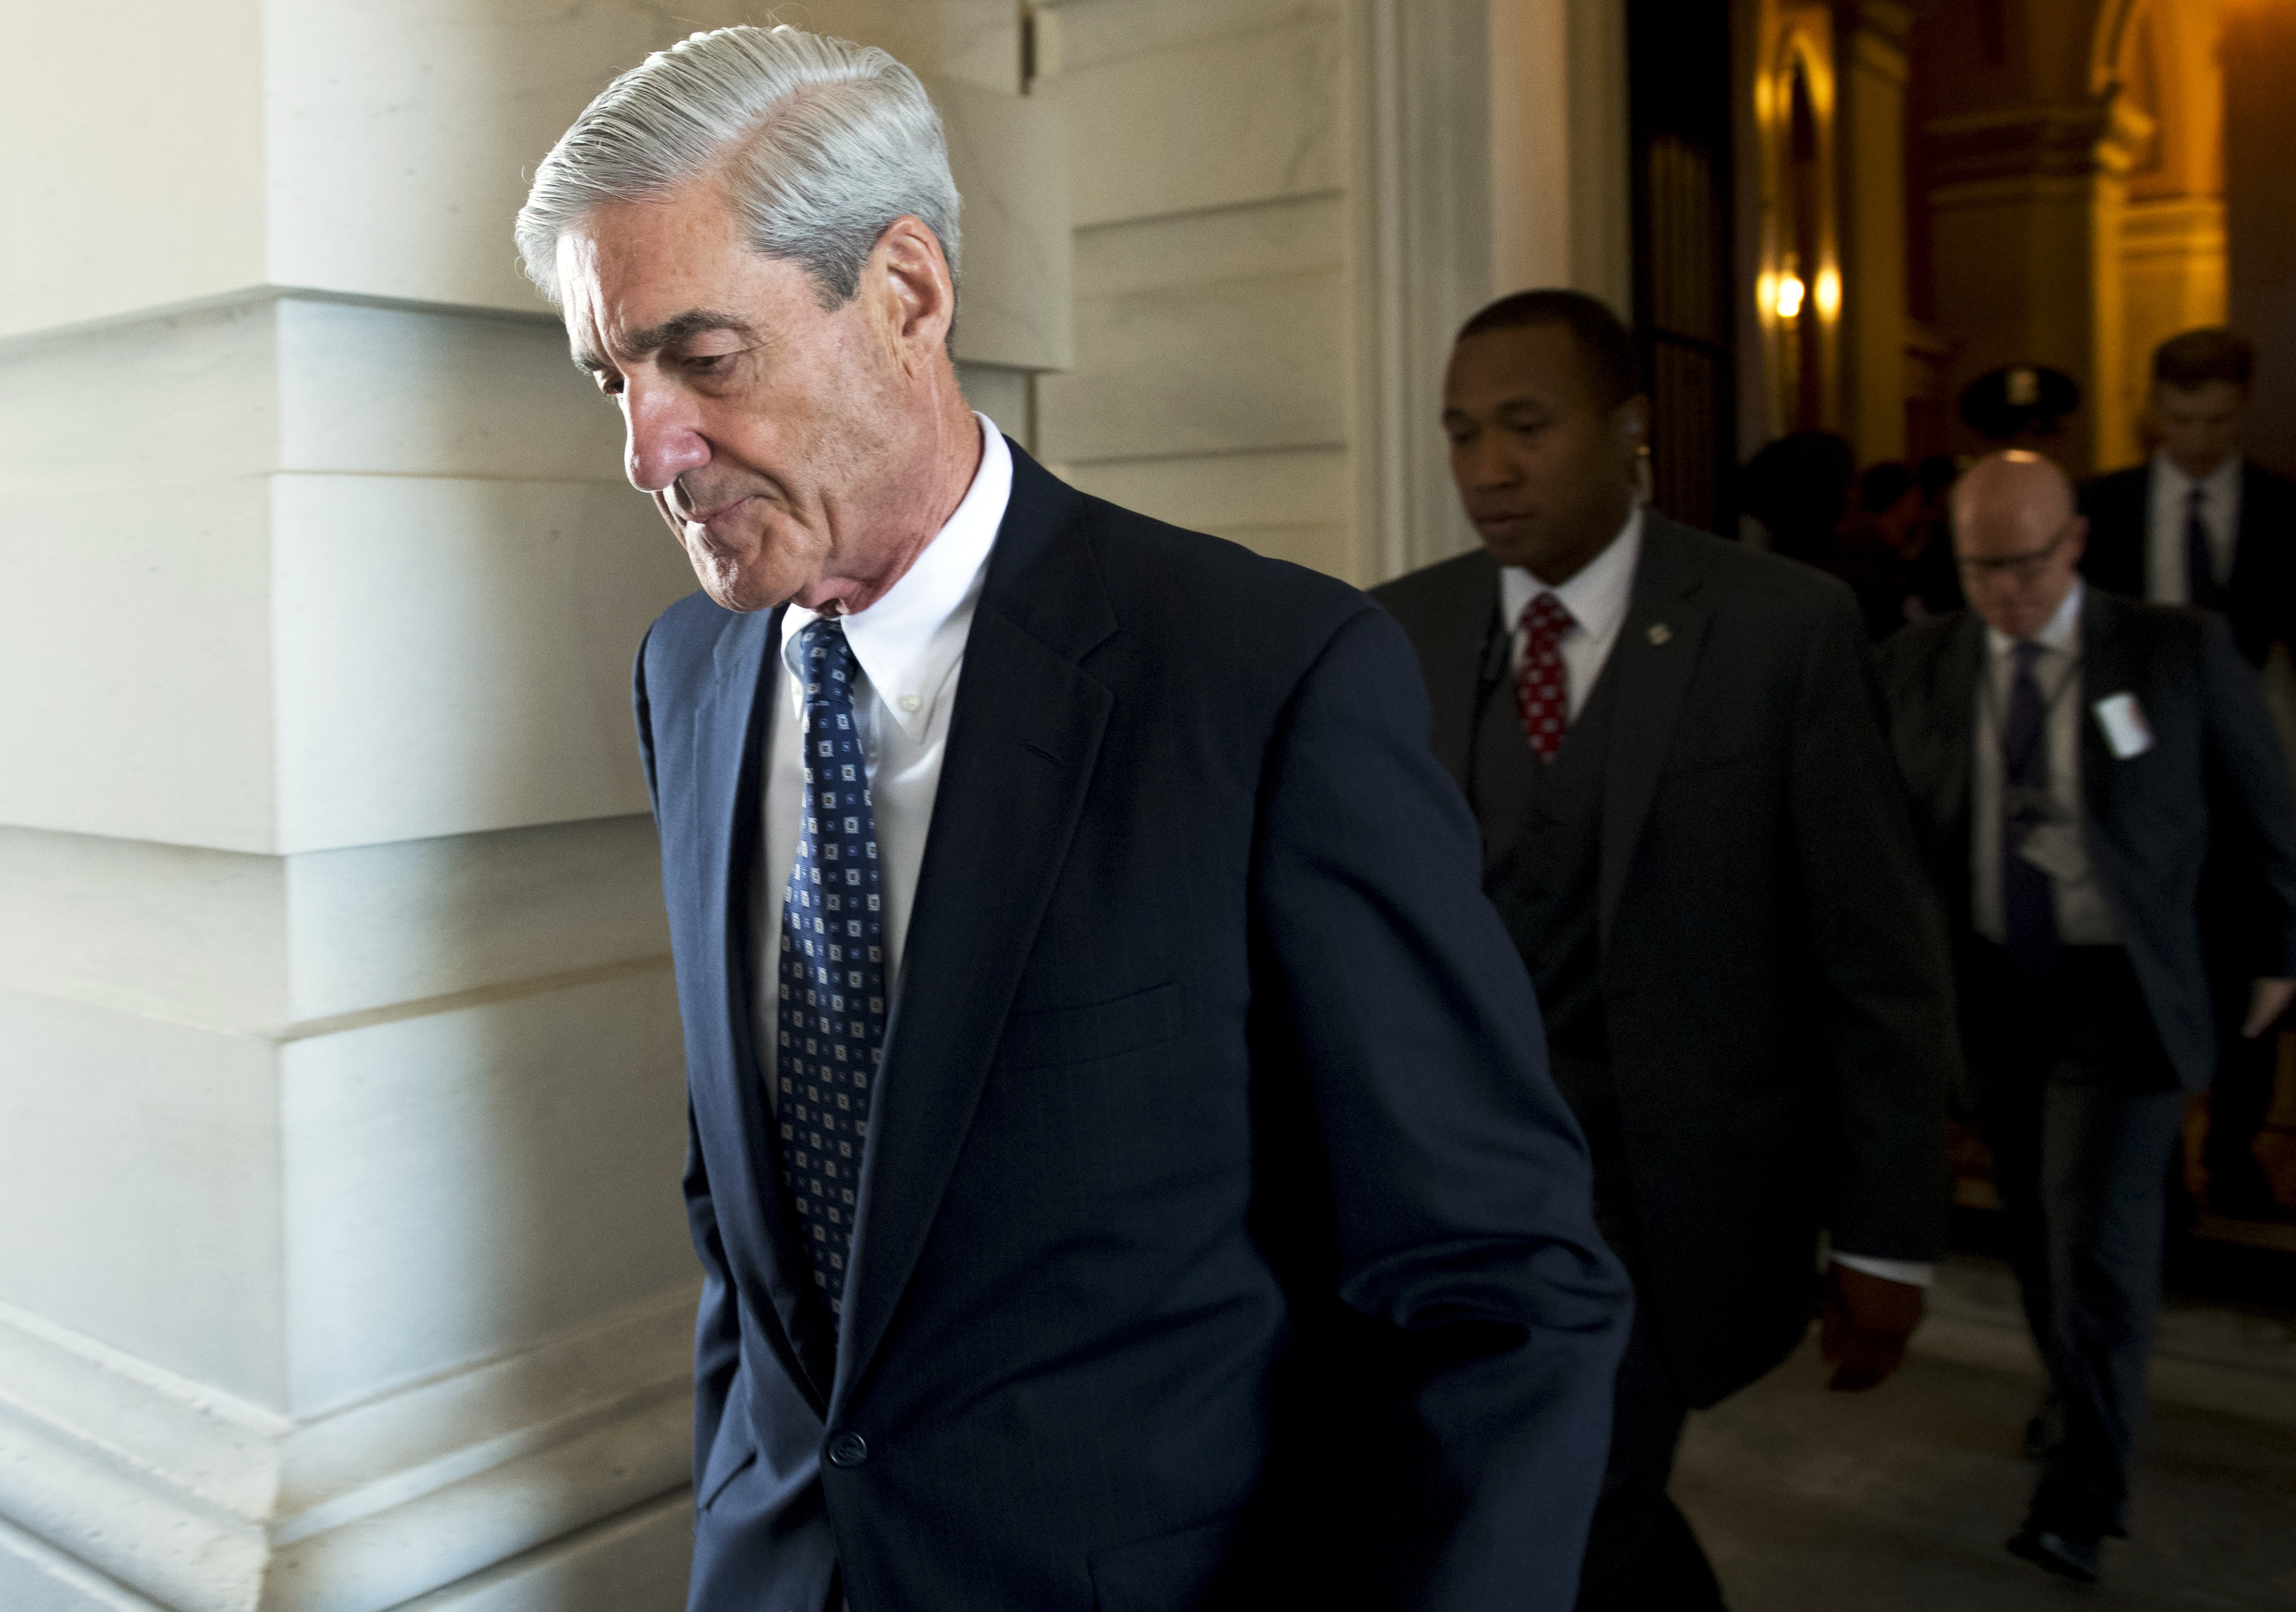 Why Trump Should Be Afraid With Robert Mueller on the Case